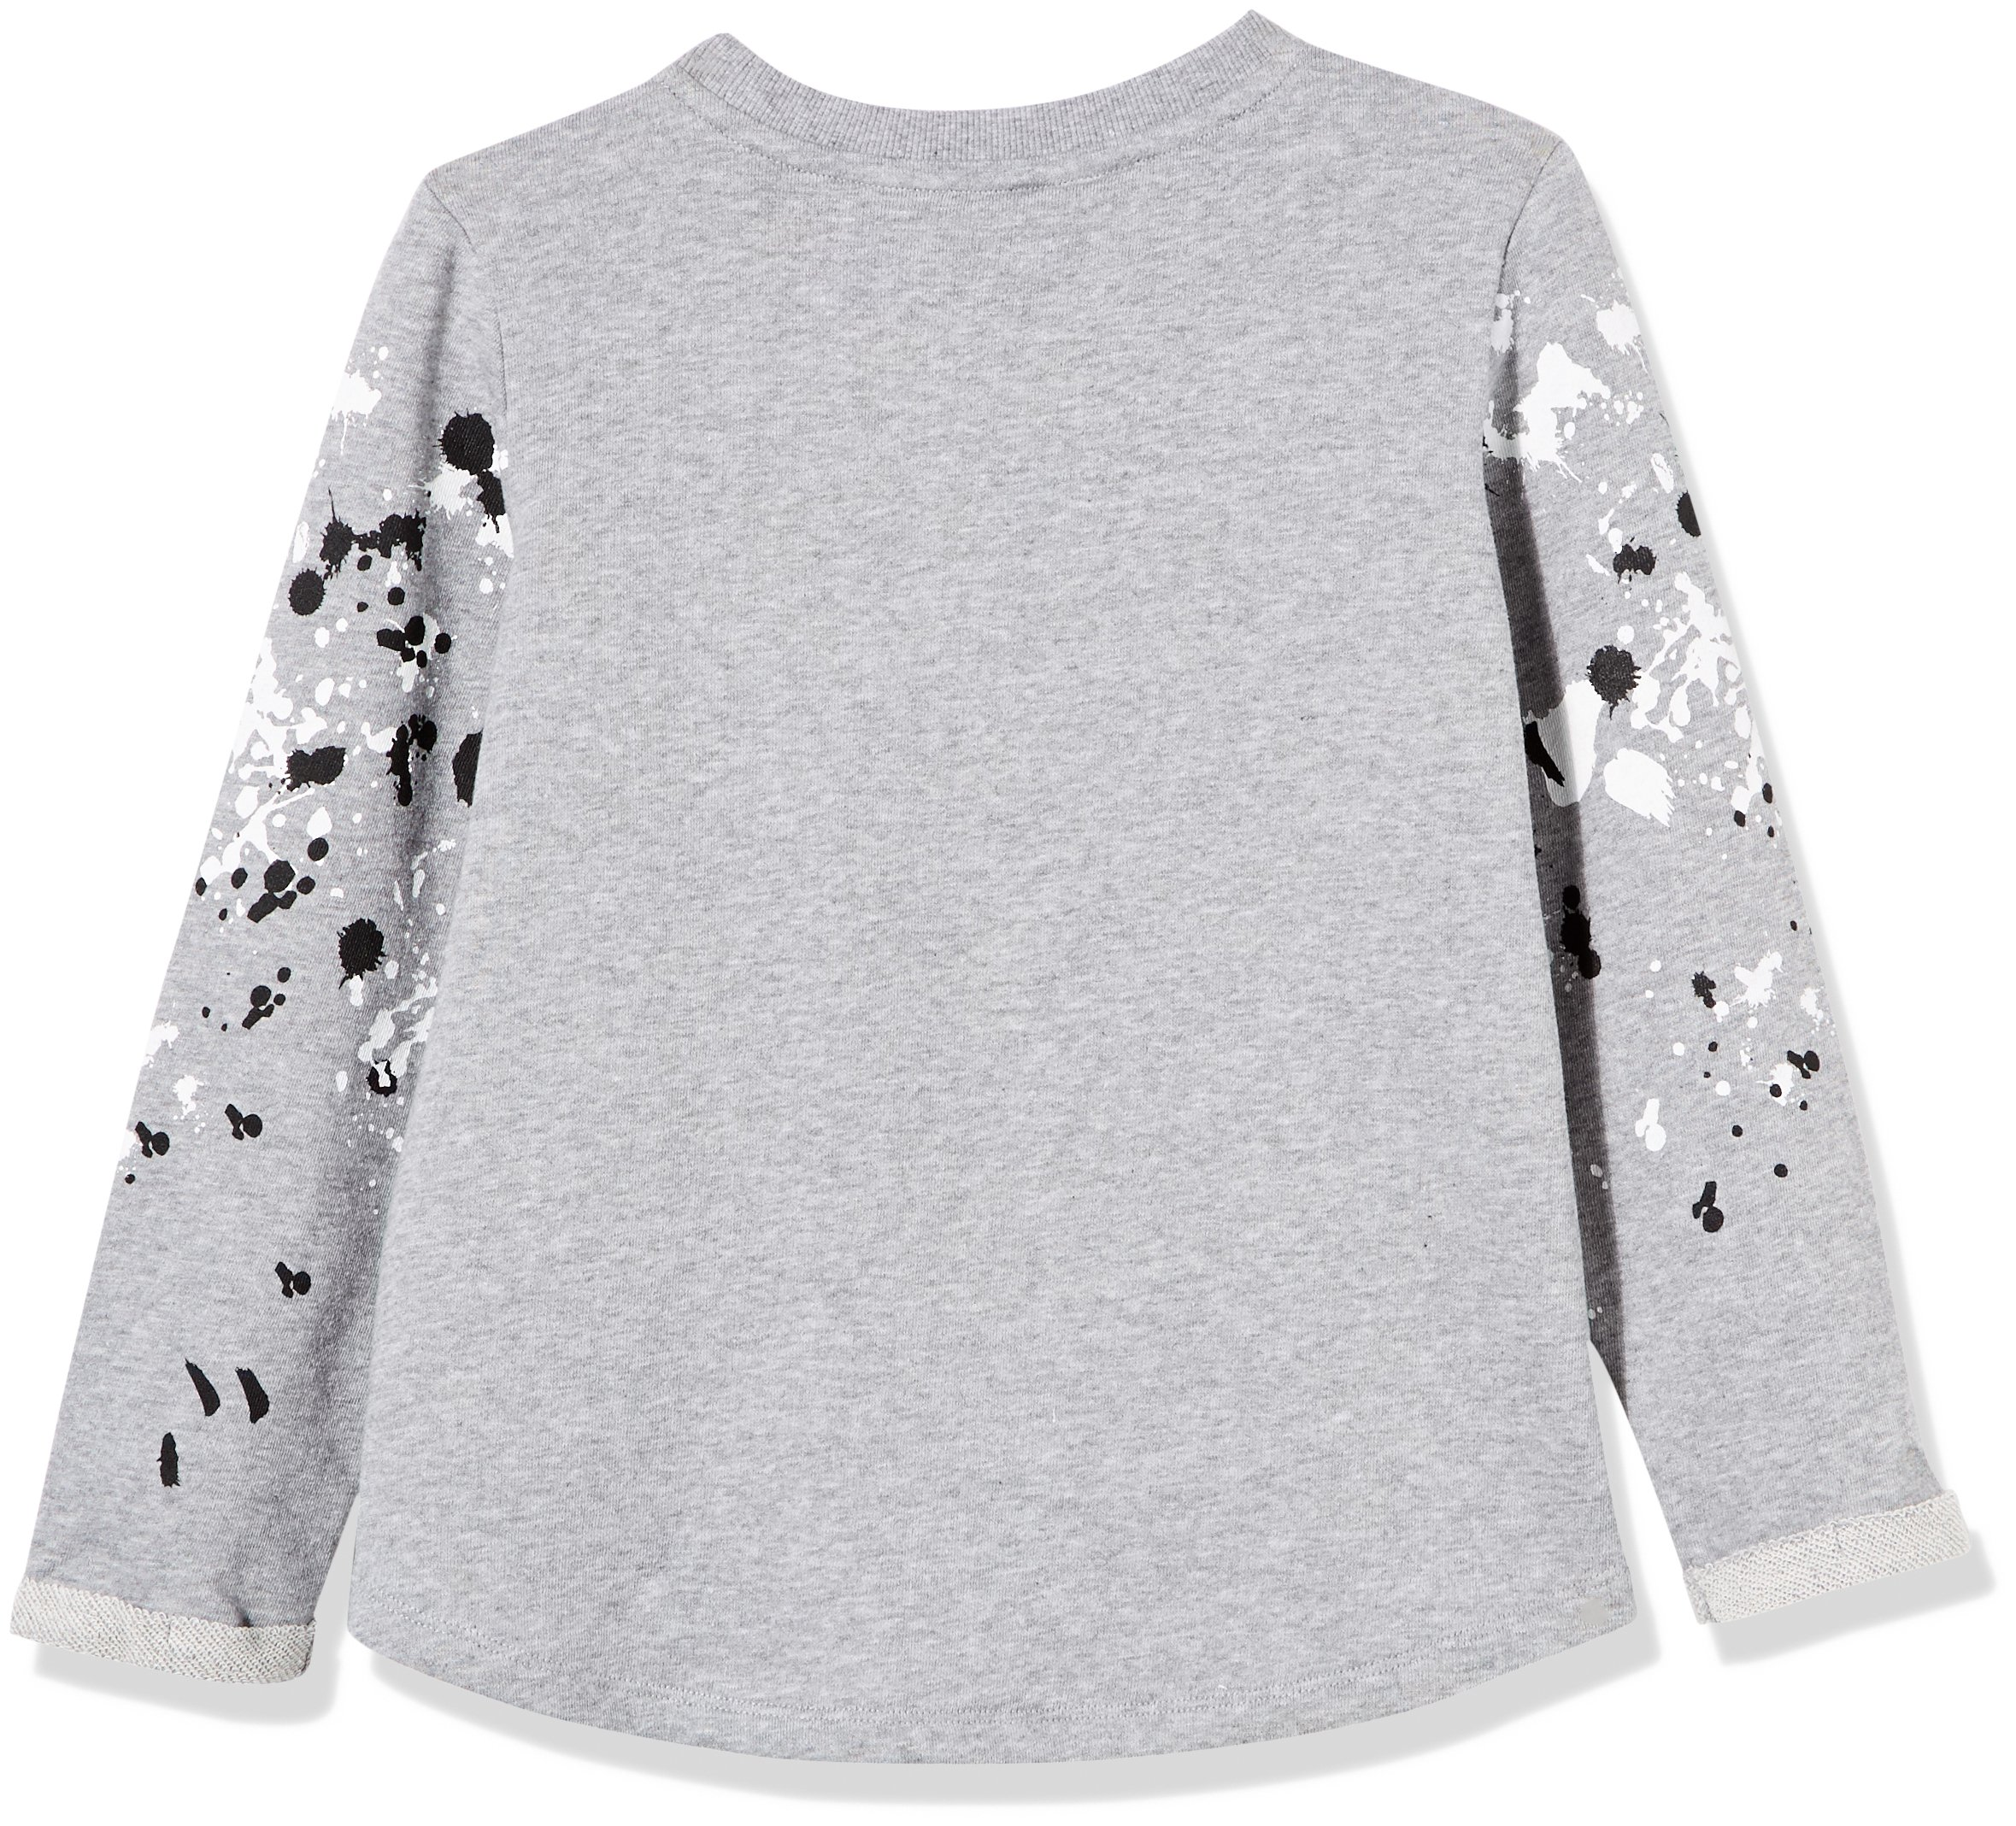 Kid Nation Girls' French Terry Rolled-Cuff Printed Oversized T-Shirt Small Gray Heather by Kid Nation (Image #2)